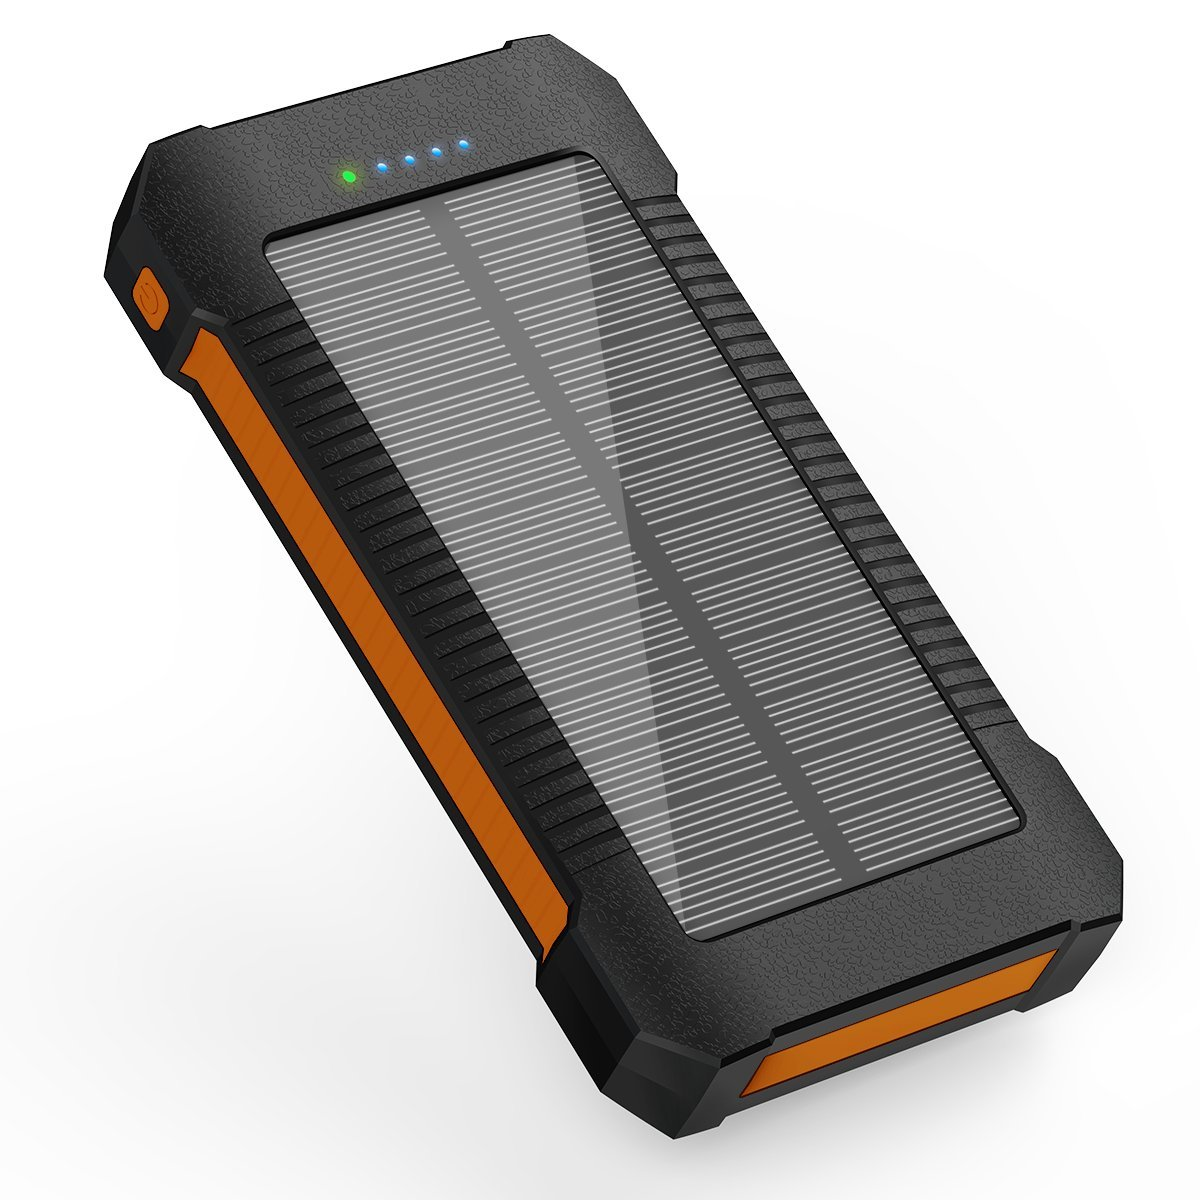 Solar Charger Power Bank 22000 mAh, Portable Solar Phone Charger Solar Panel External Battery Charger with Dual USB, Type-C, LED Flashlight, IPx7 Waterproof, Shockproof and Dustproof, for Cell Phone, iPhone, Samsung Galaxy, iPad, Camera, Bl